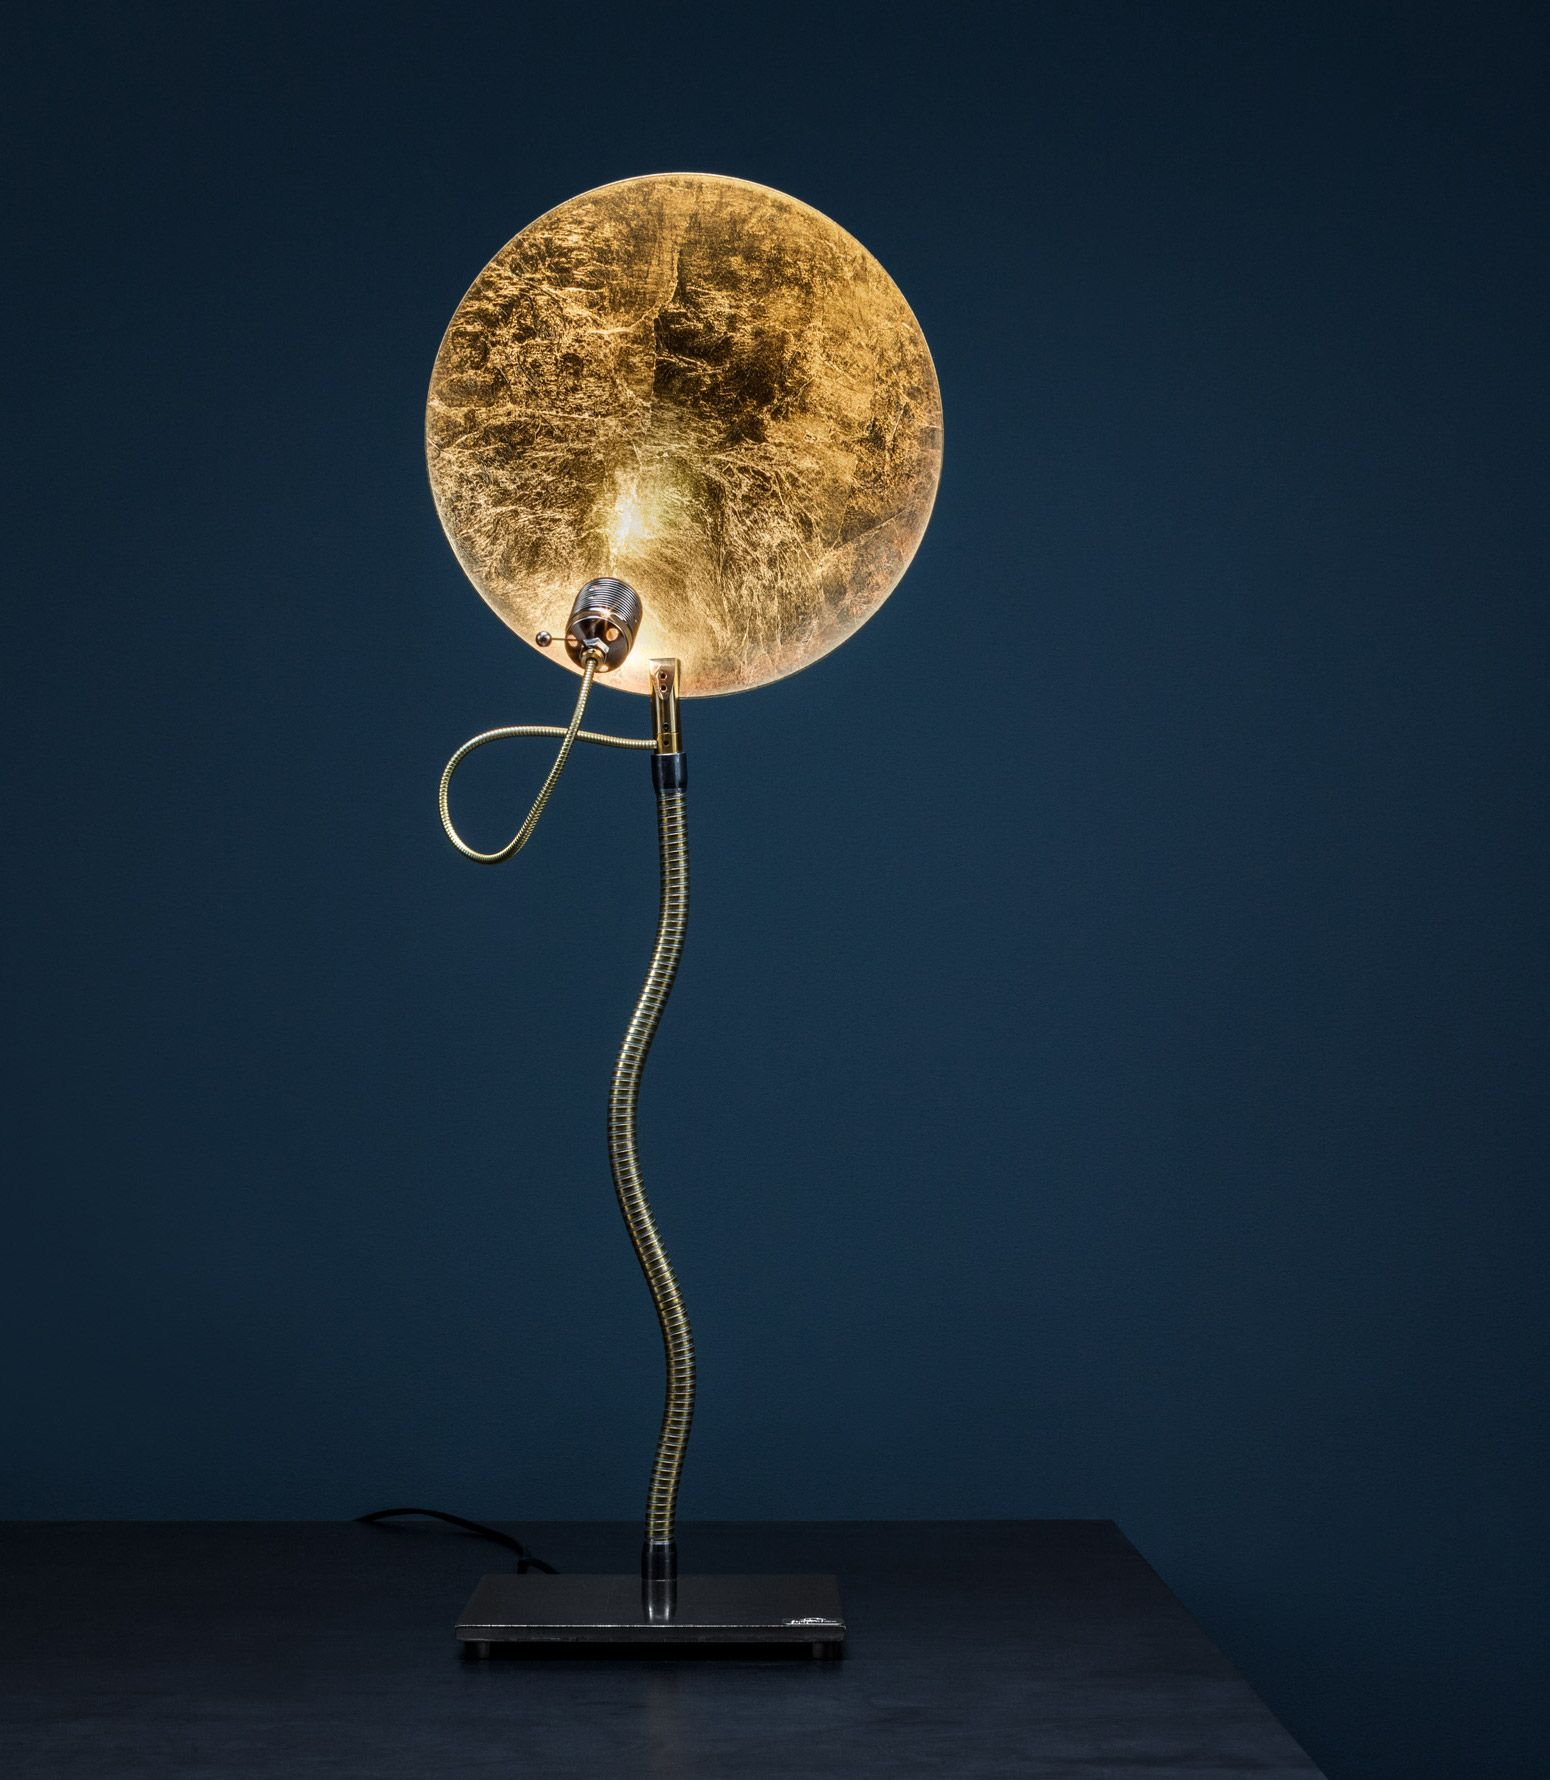 Luci D Oro Produced With Mystifying Reflections In Mind The